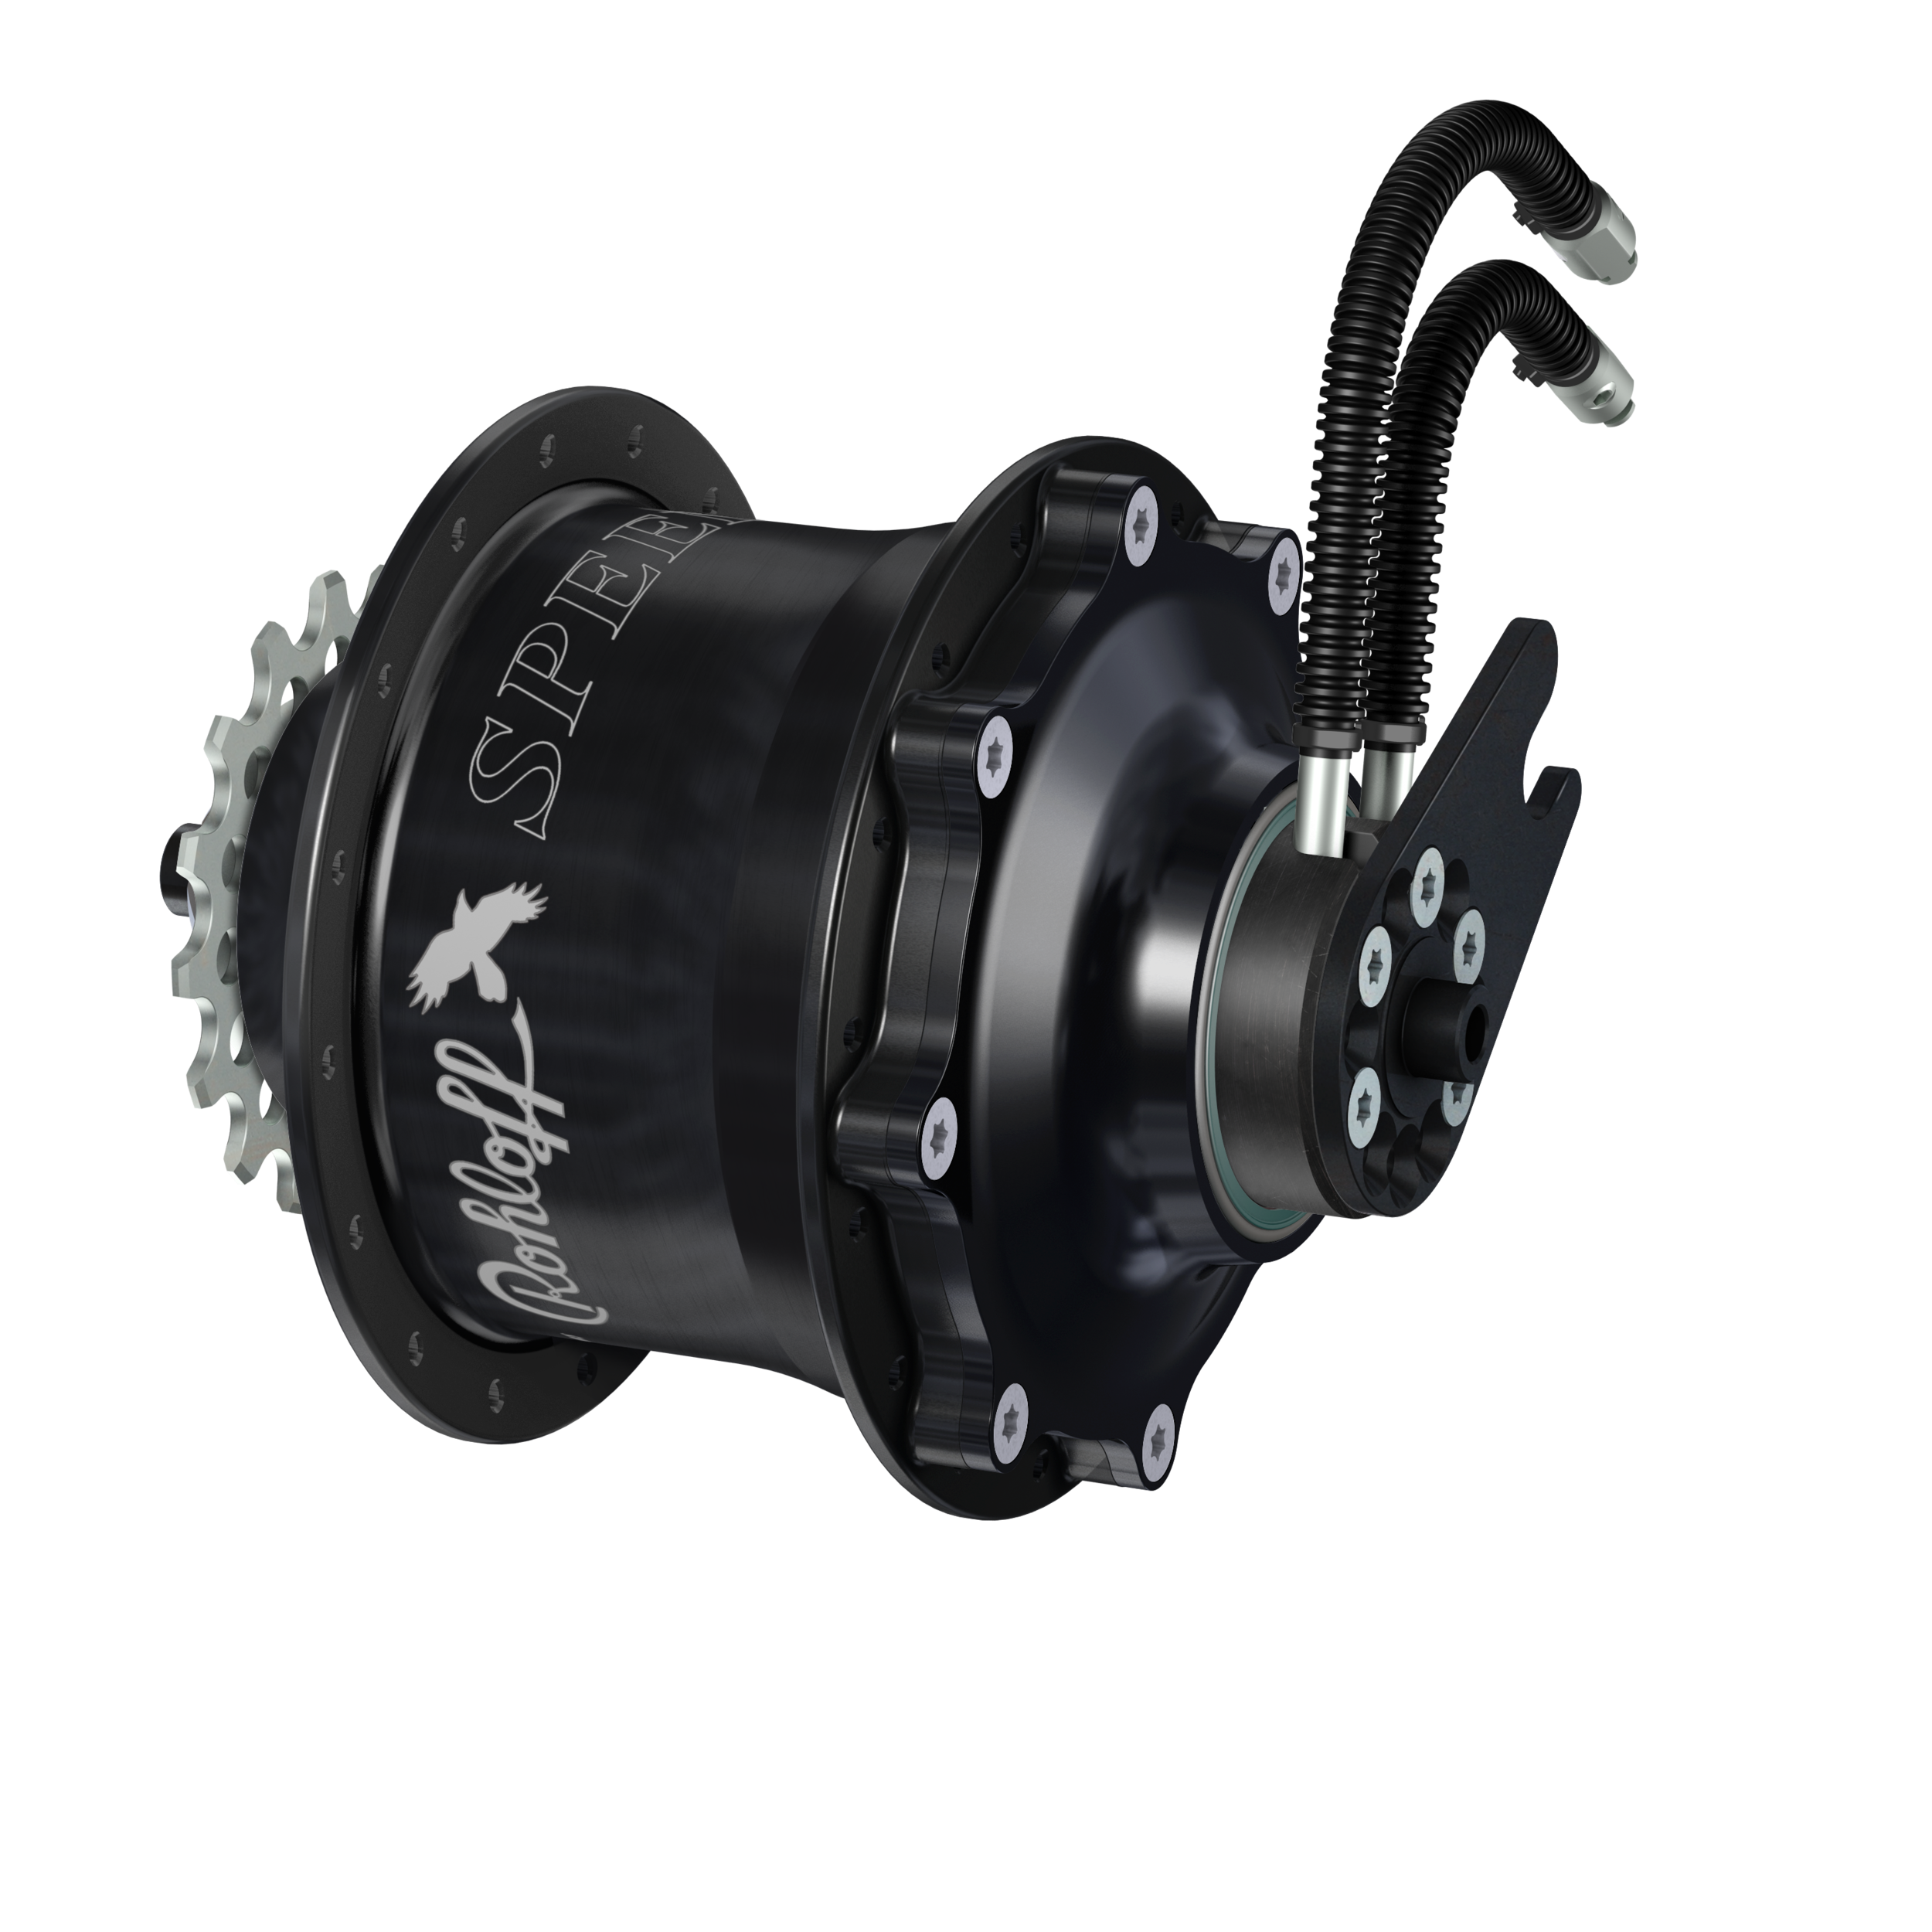 The Rohloff Speedhub 500 with 14 evenly spaced gears and disc brakes! A wheel that can be built up with no dish, providing a dramatic increase in strength and reliability. A perfect solution for many tandem riders!